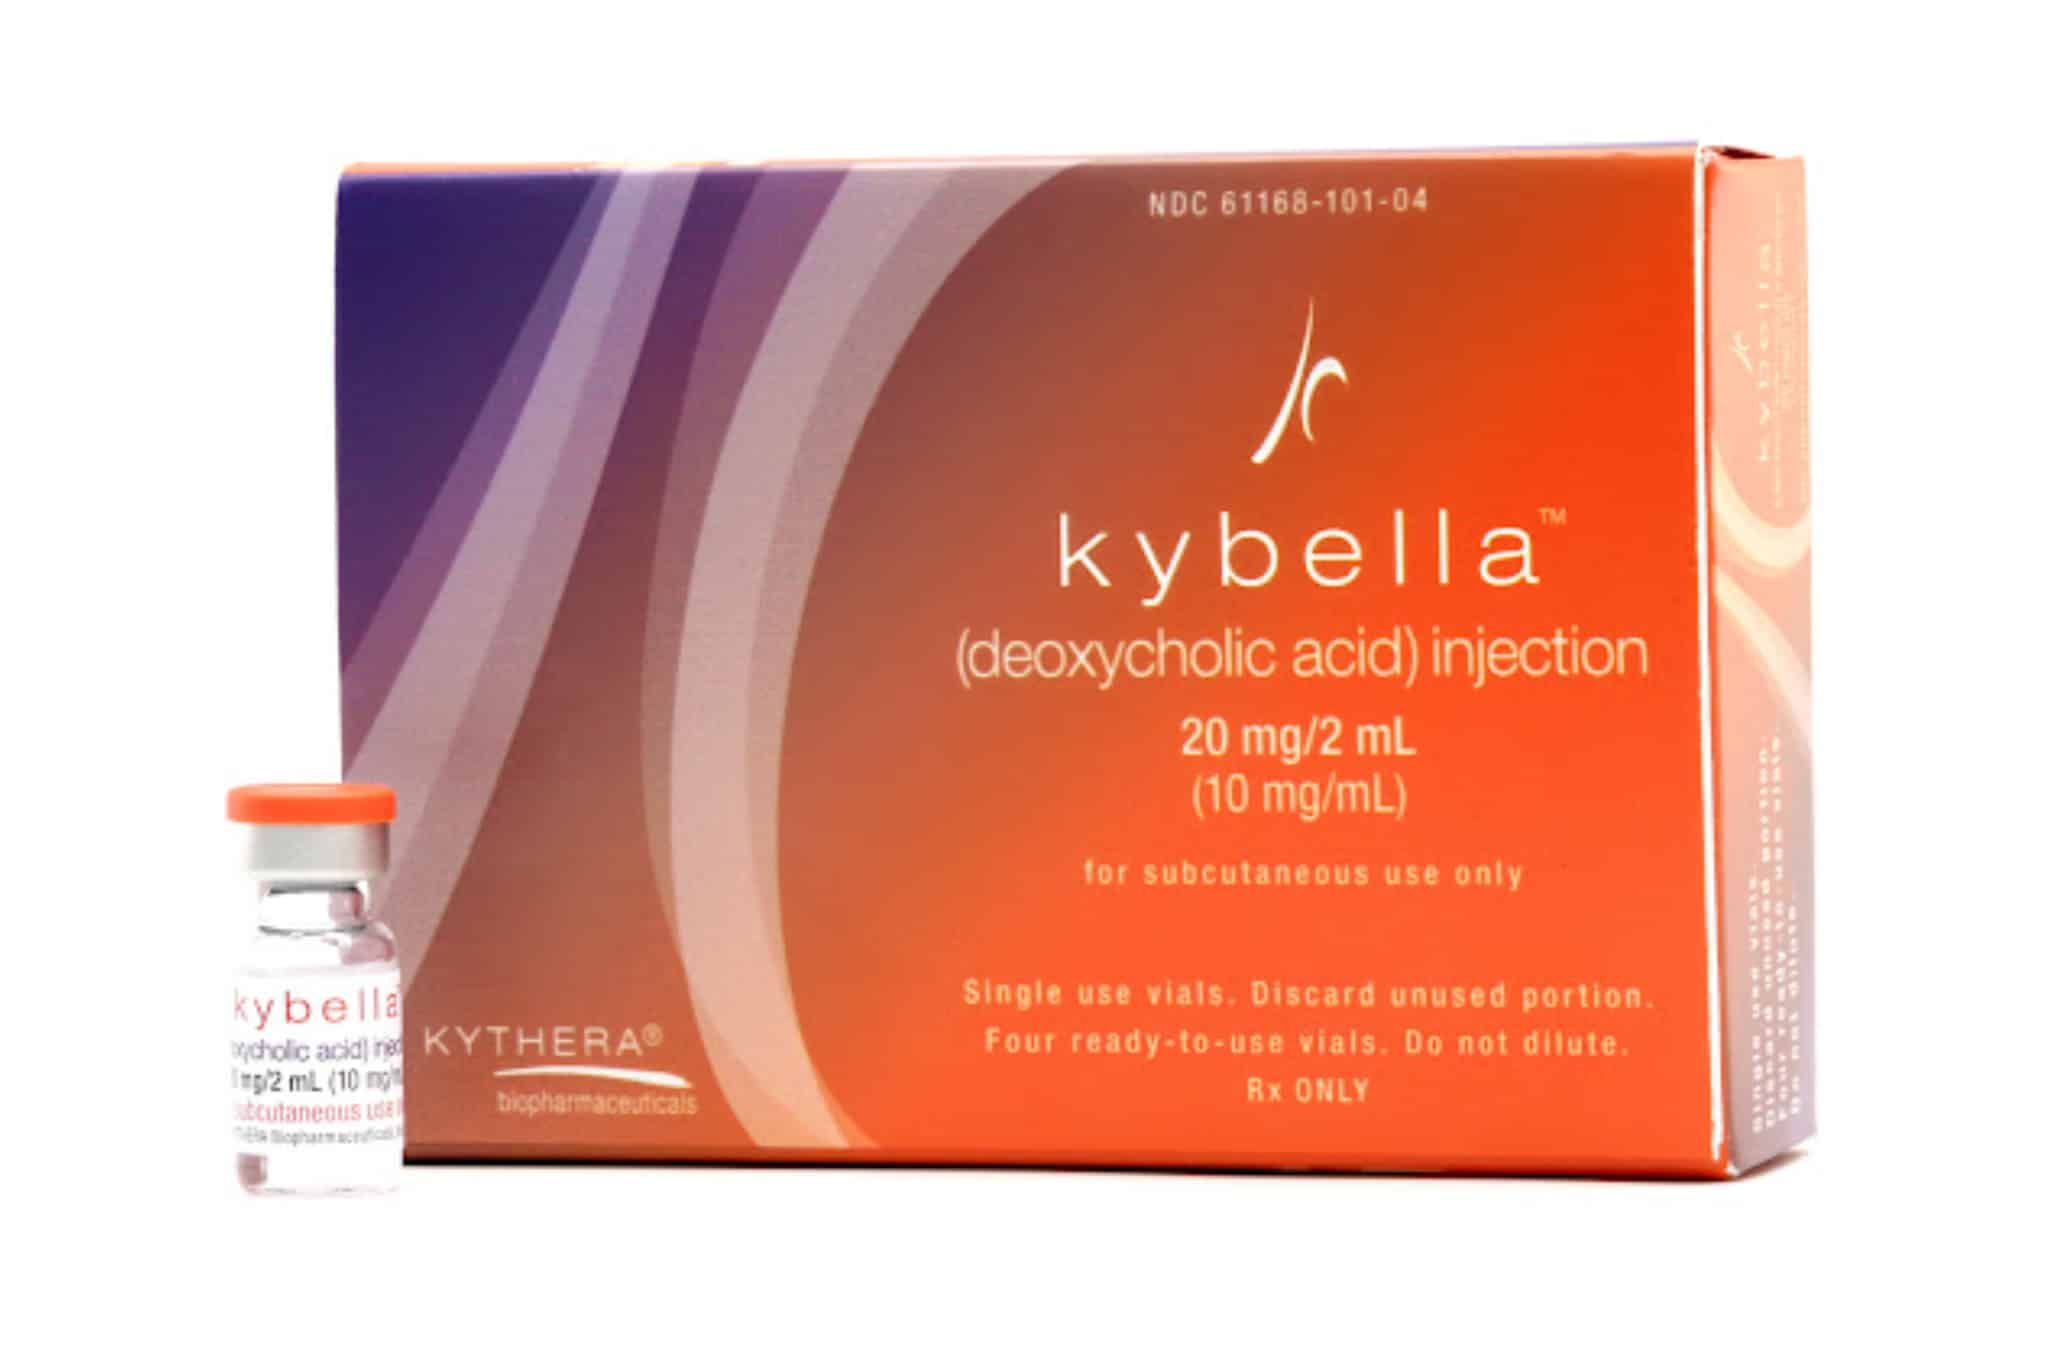 Kybella Injection Packaging